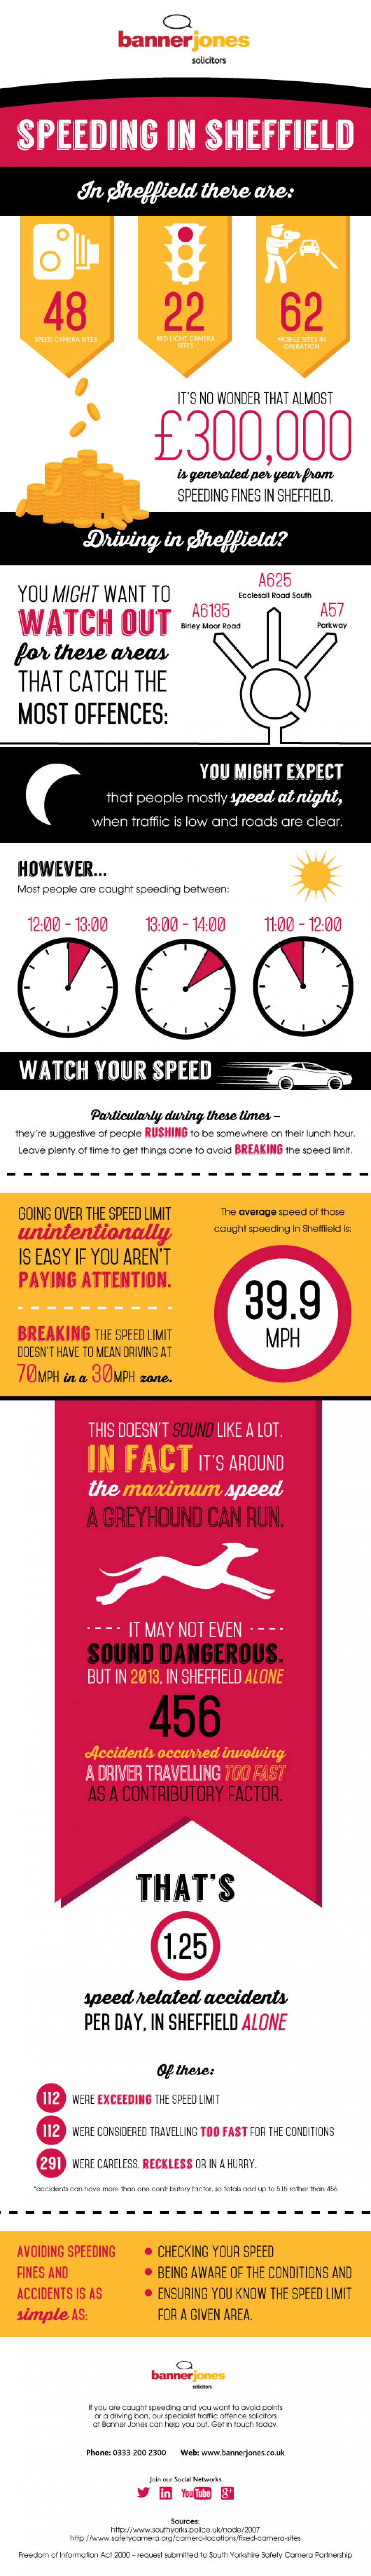 Speeding in Sheffield - The Facts Infographic